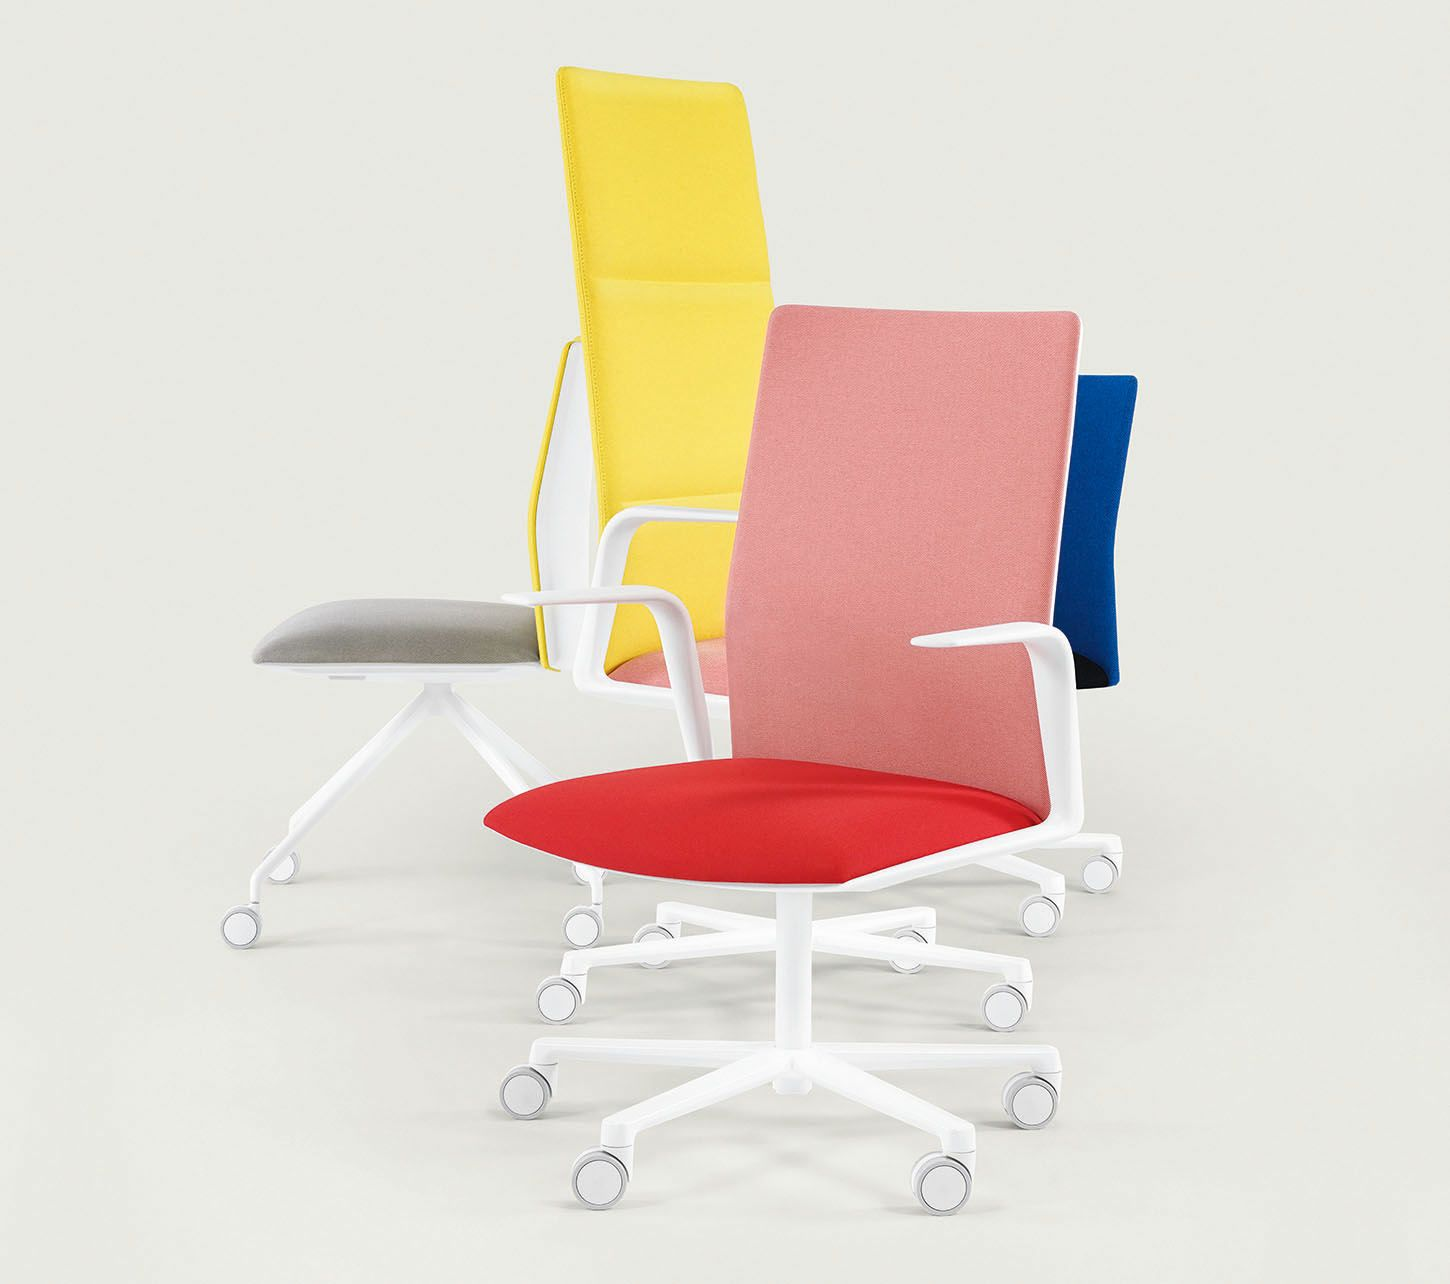 35 Unexpectedly Chic Pieces For An Un Boring Office Sight Unseen Leather Office Chair Chic Office Chair Furniture Graphic